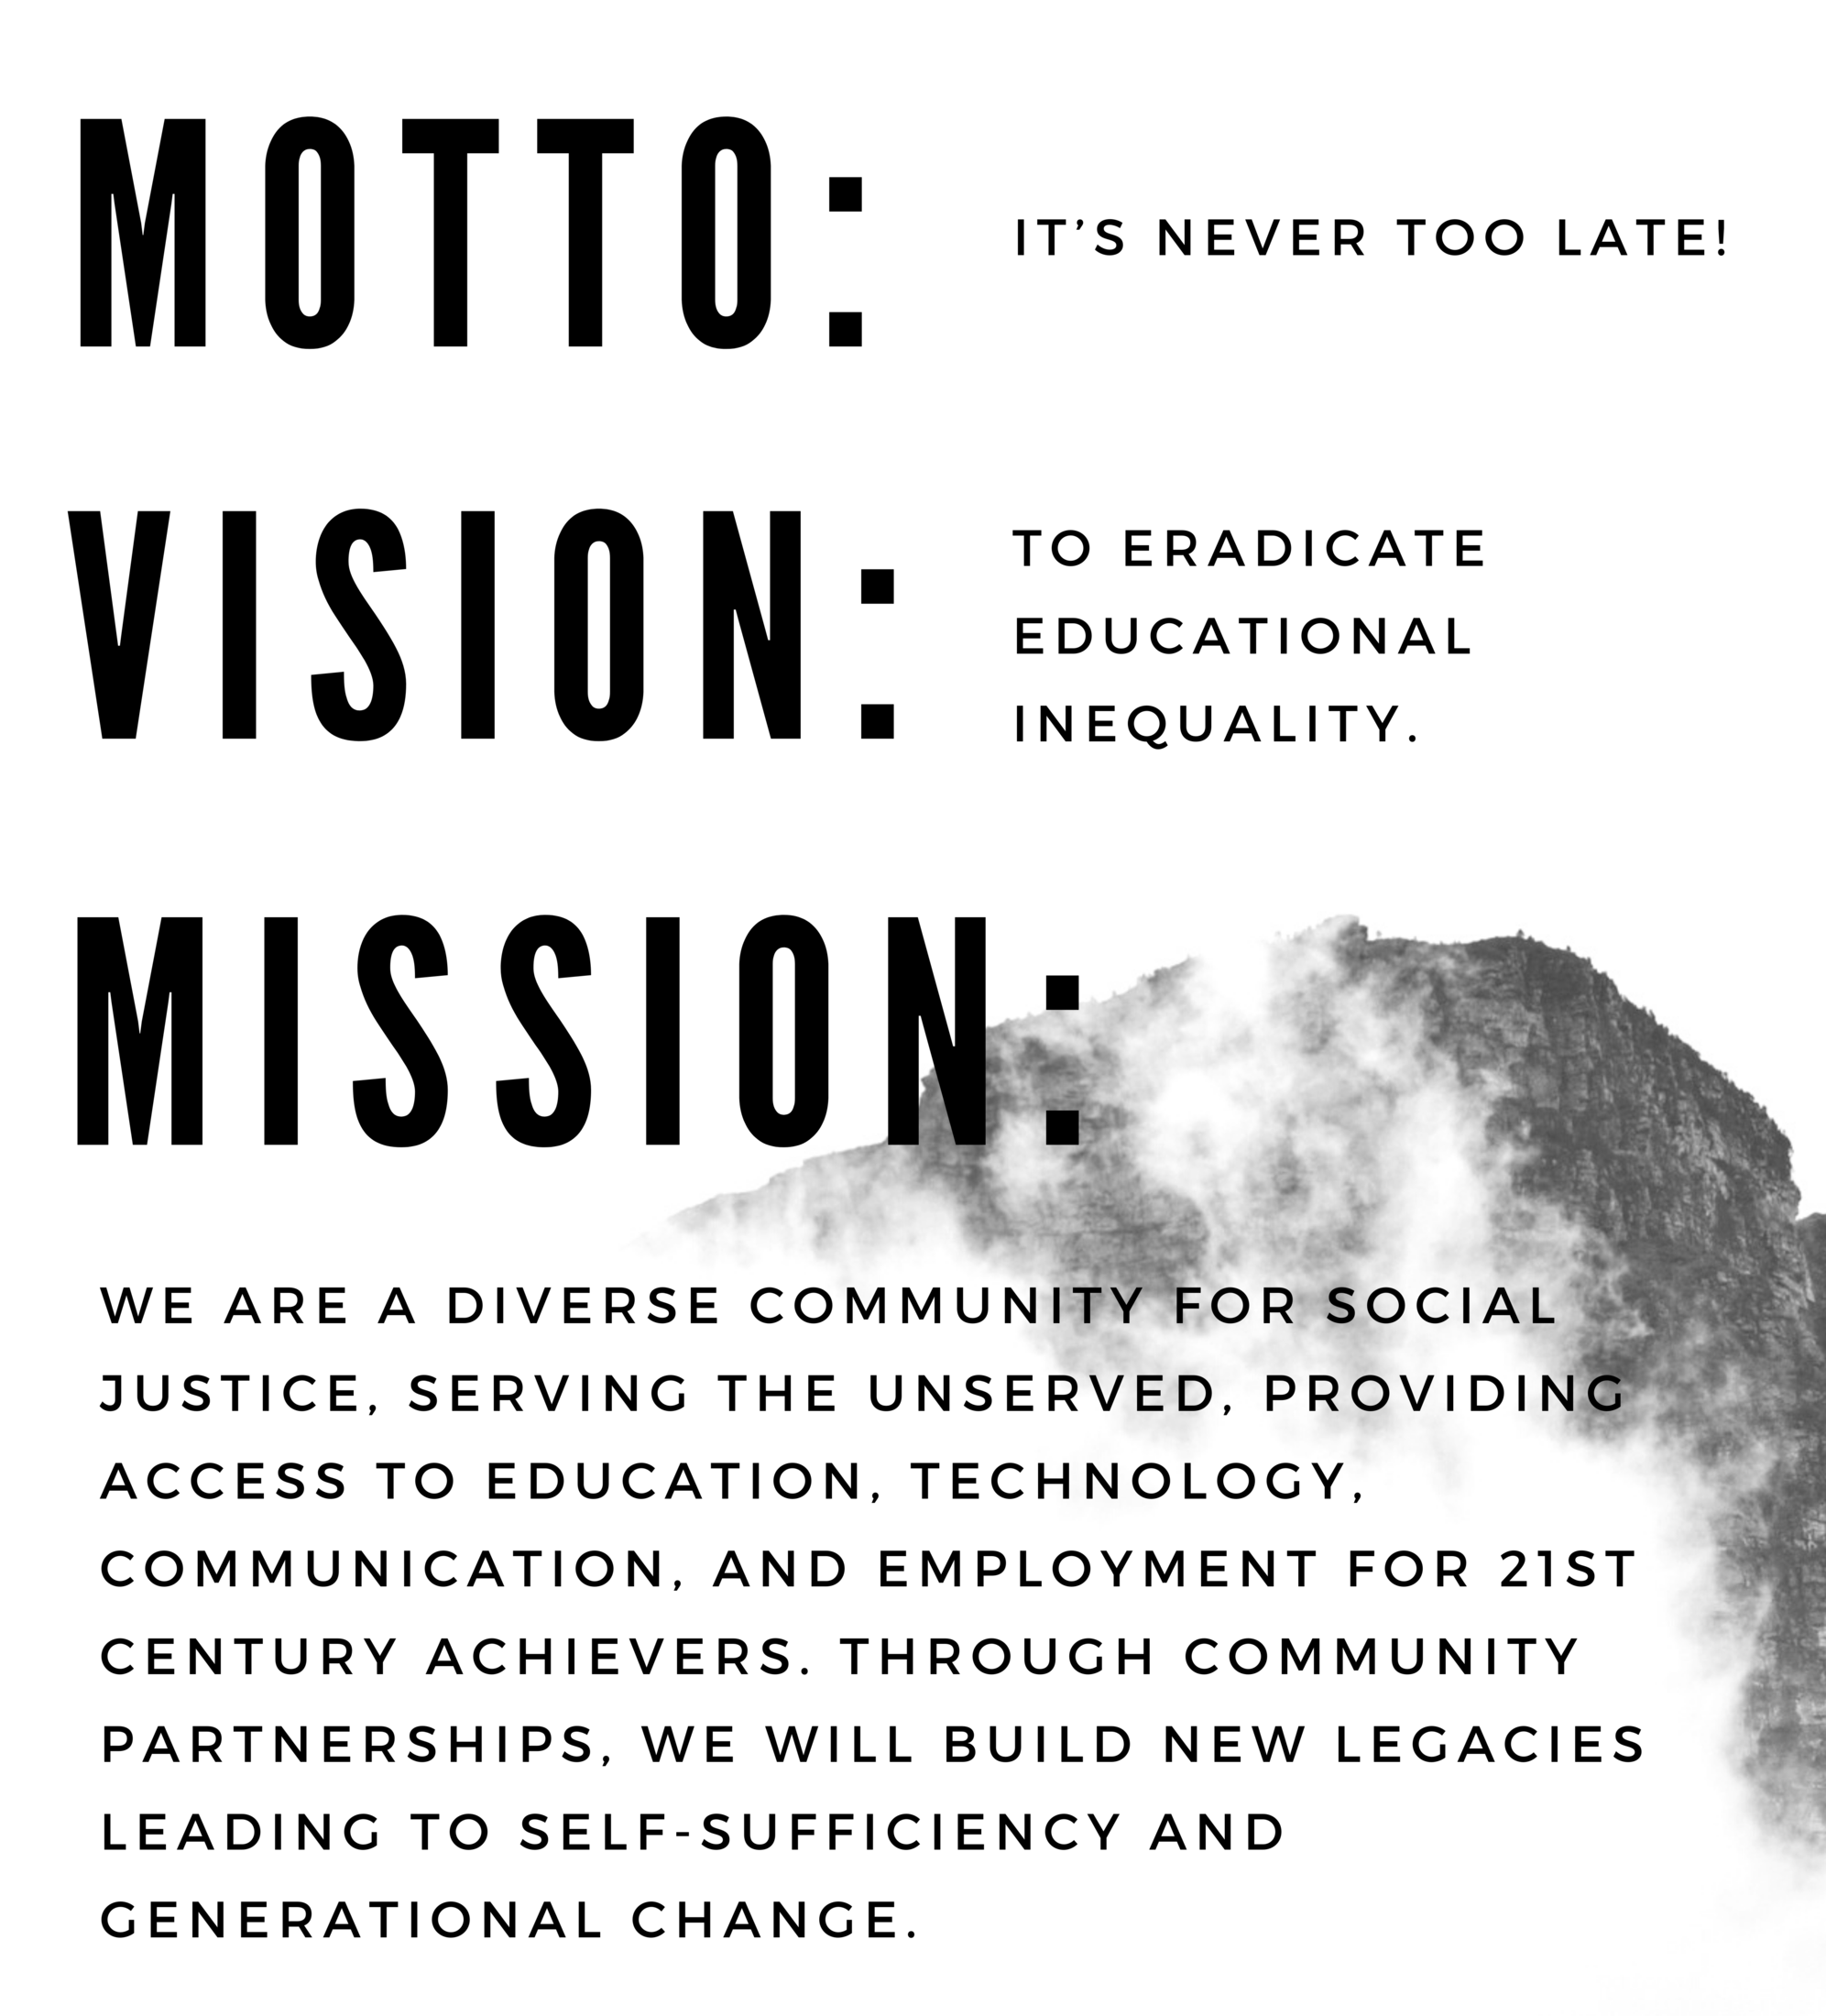 Motto: It's never too late! Vision: To eradicate educational inequality Mission: We are a diverse community for social justice, serving the unserved, providing access to education, technology, communication, and employment for 21st century achievers. Through community partnerships, we will build new legacies leading to self-sufficiency and generational change.